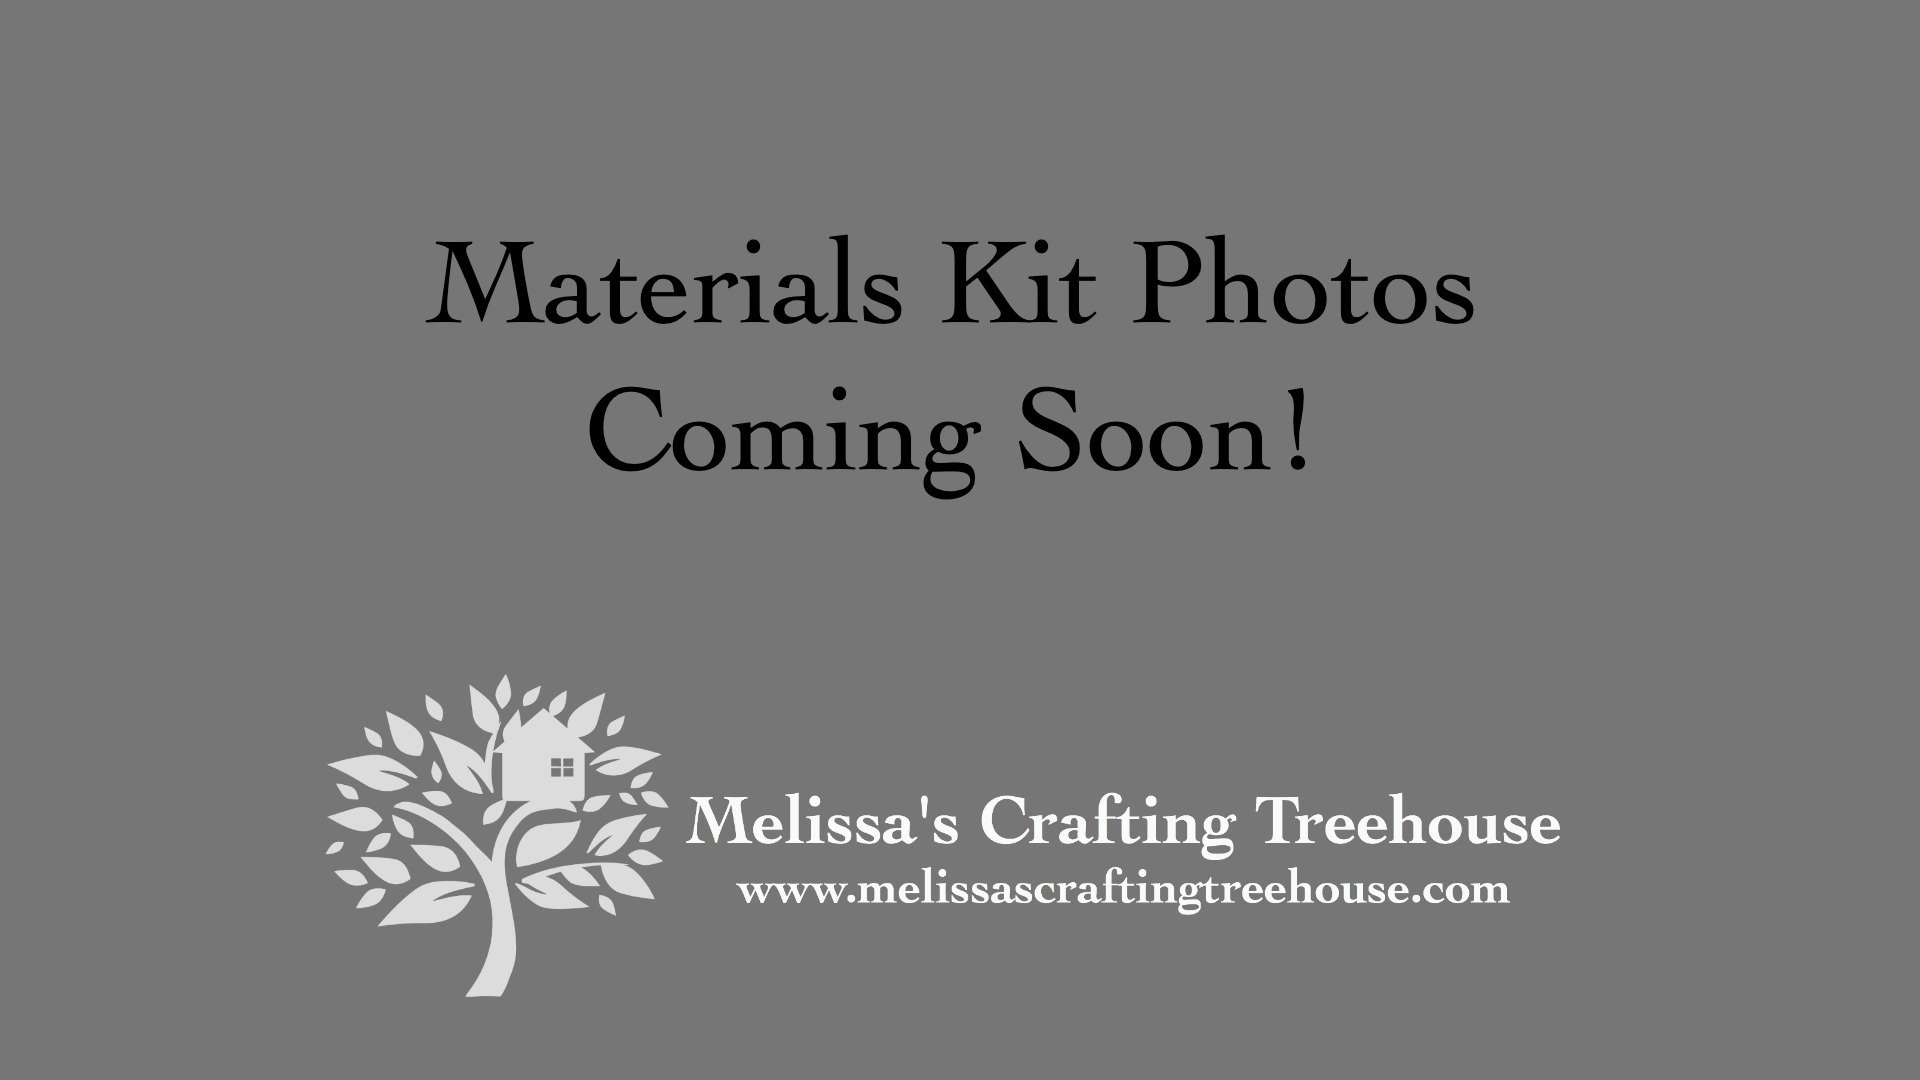 Material Kit Photos Coming Soon